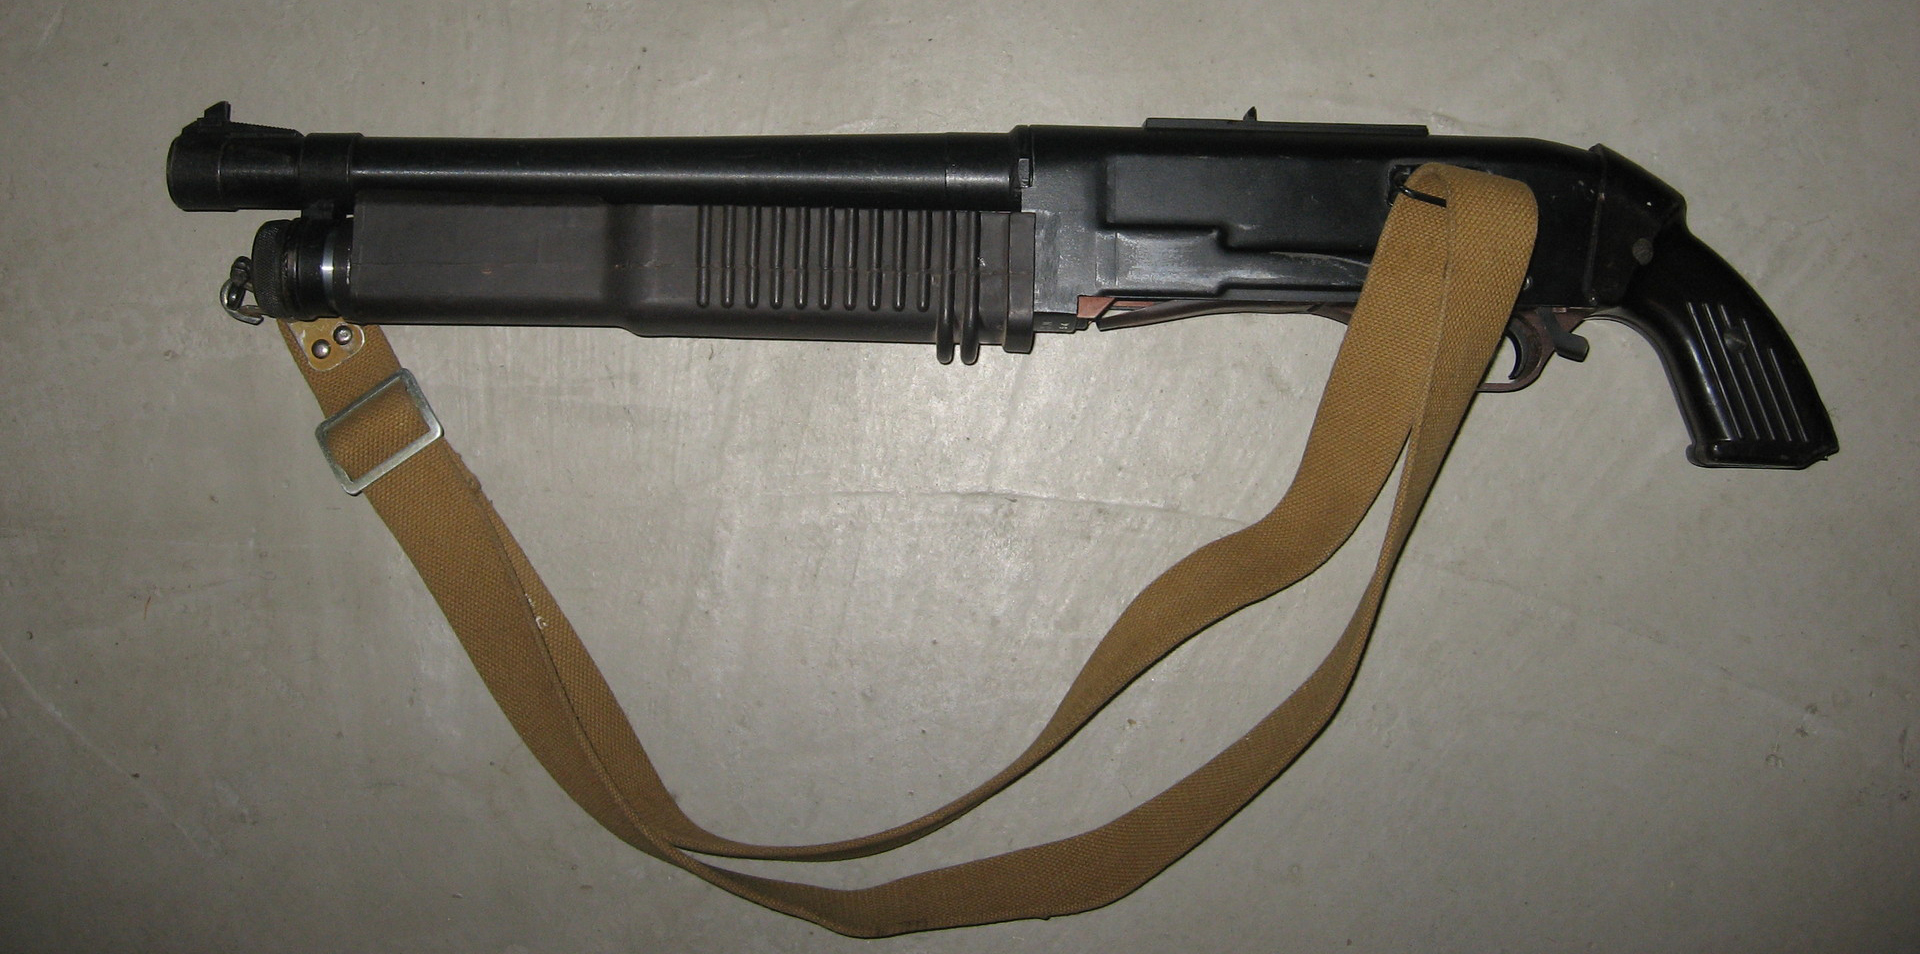 http://modernweapon.ru/images/firearms/rifle/KS-23_2.jpg